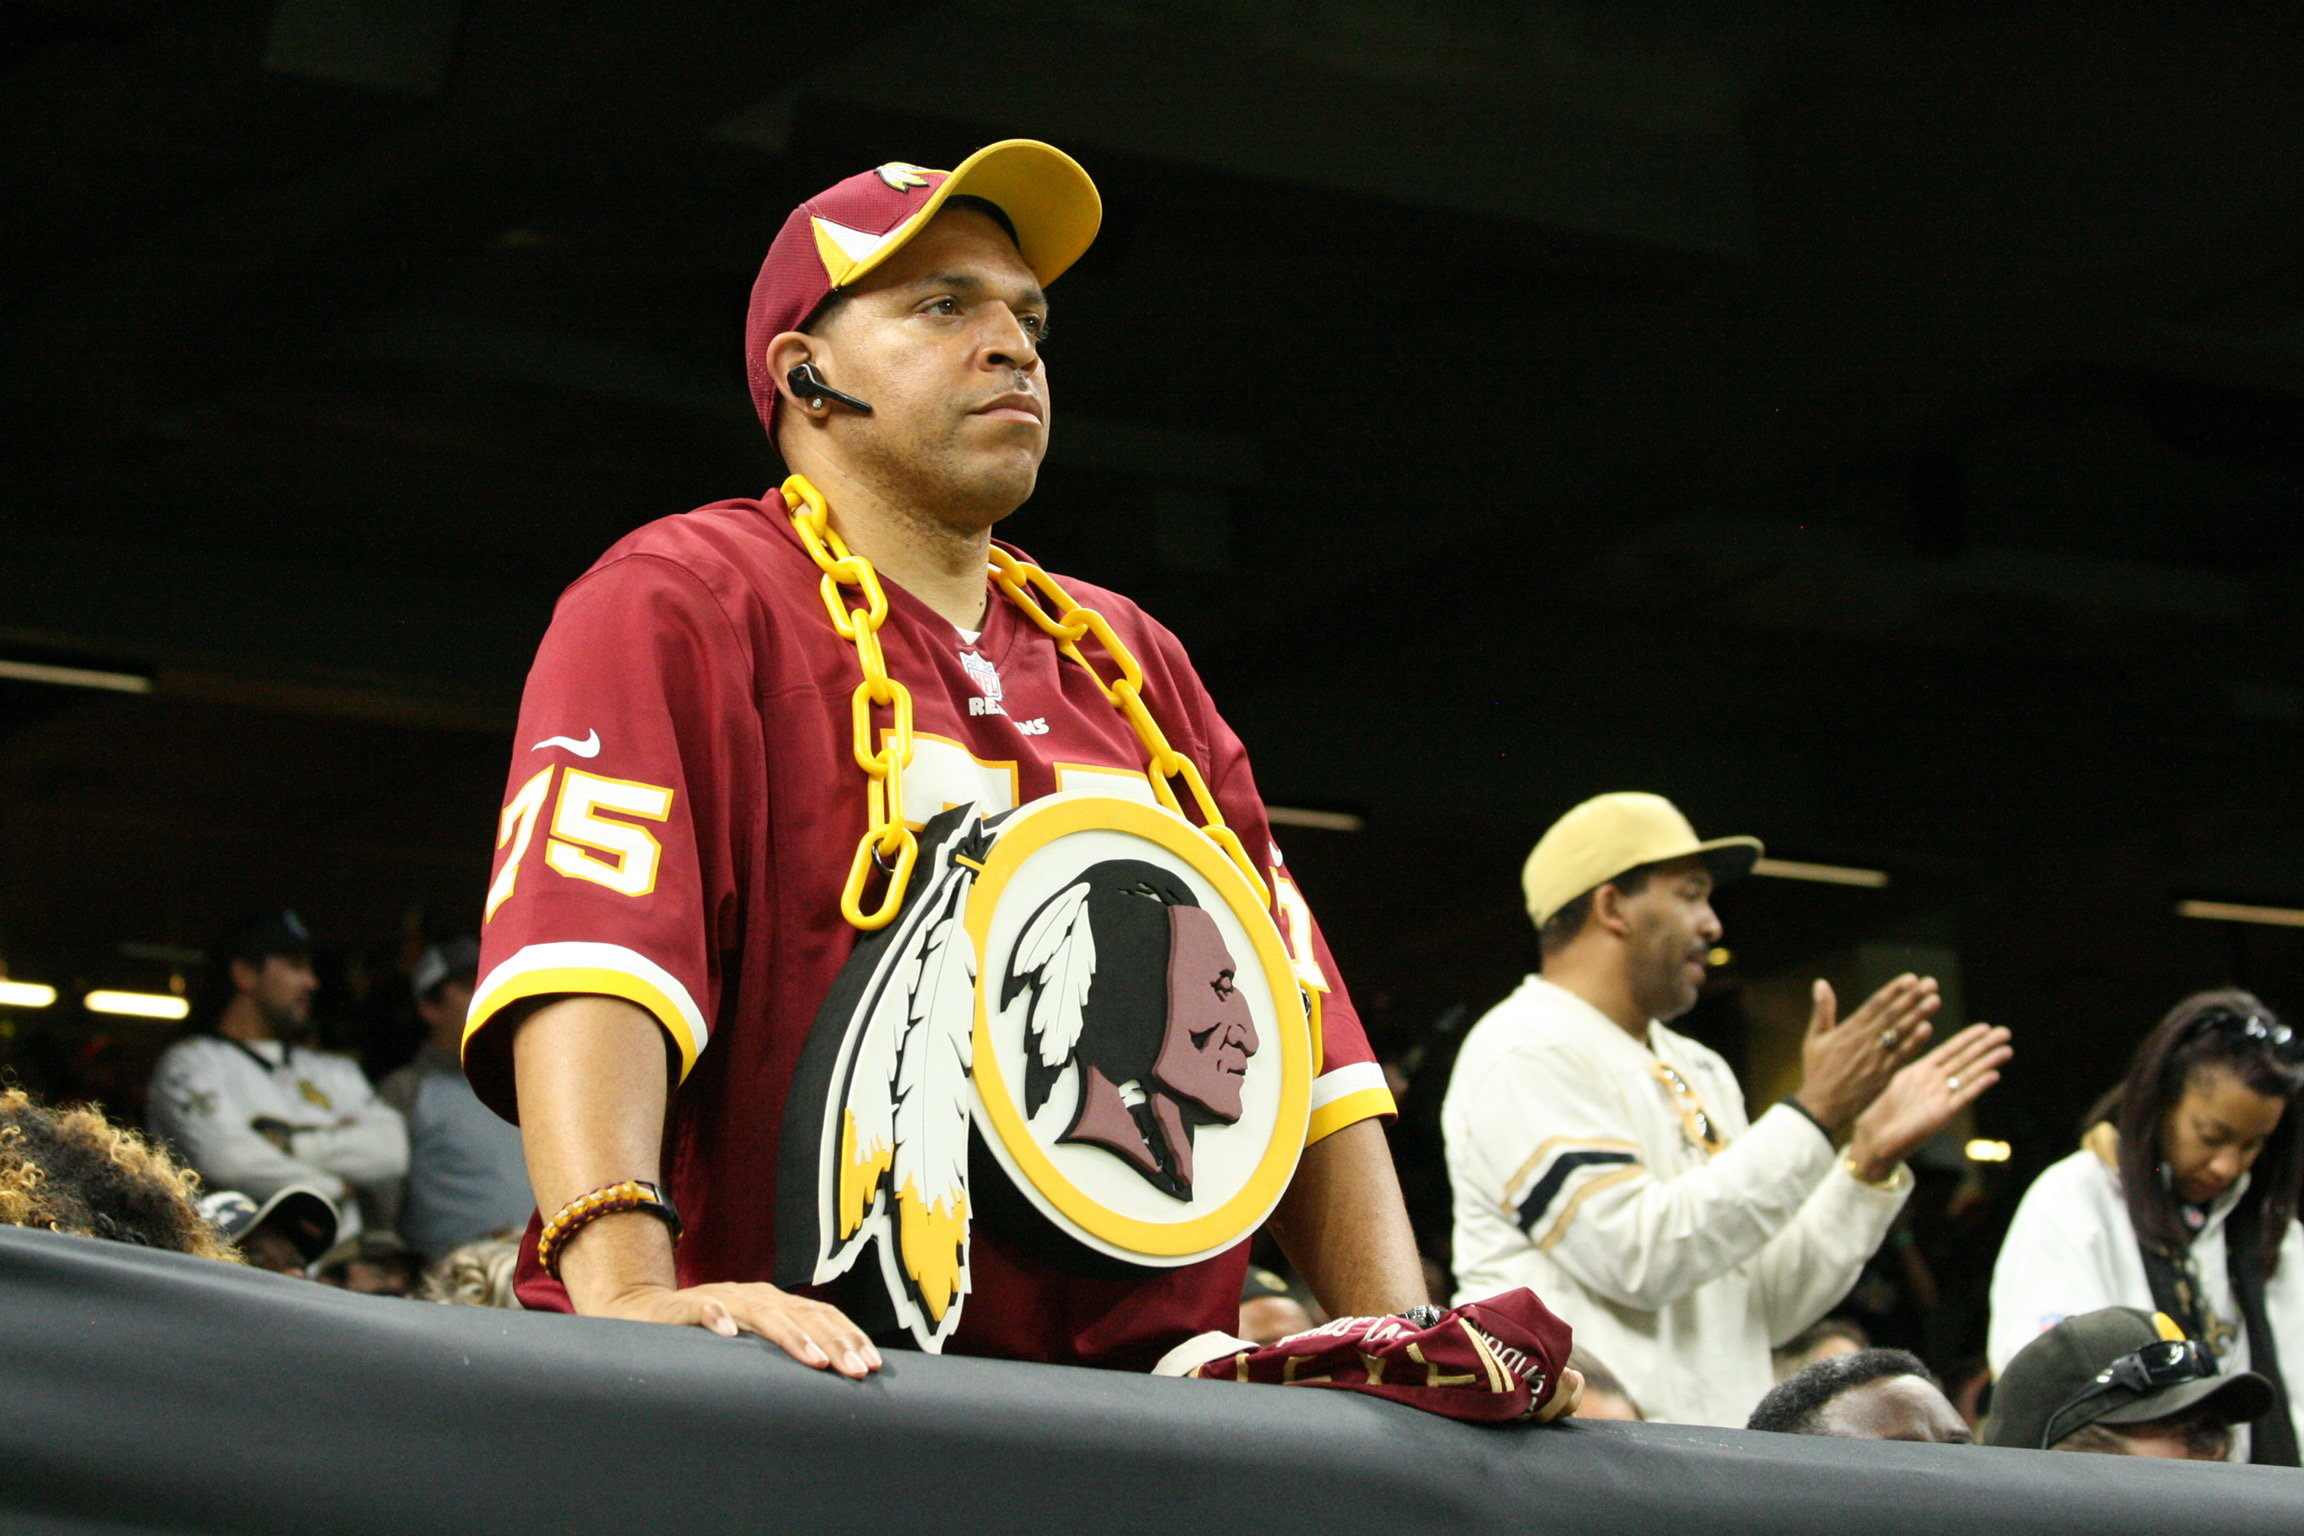 2017 Week 11: Redskins at Saints - The Fans